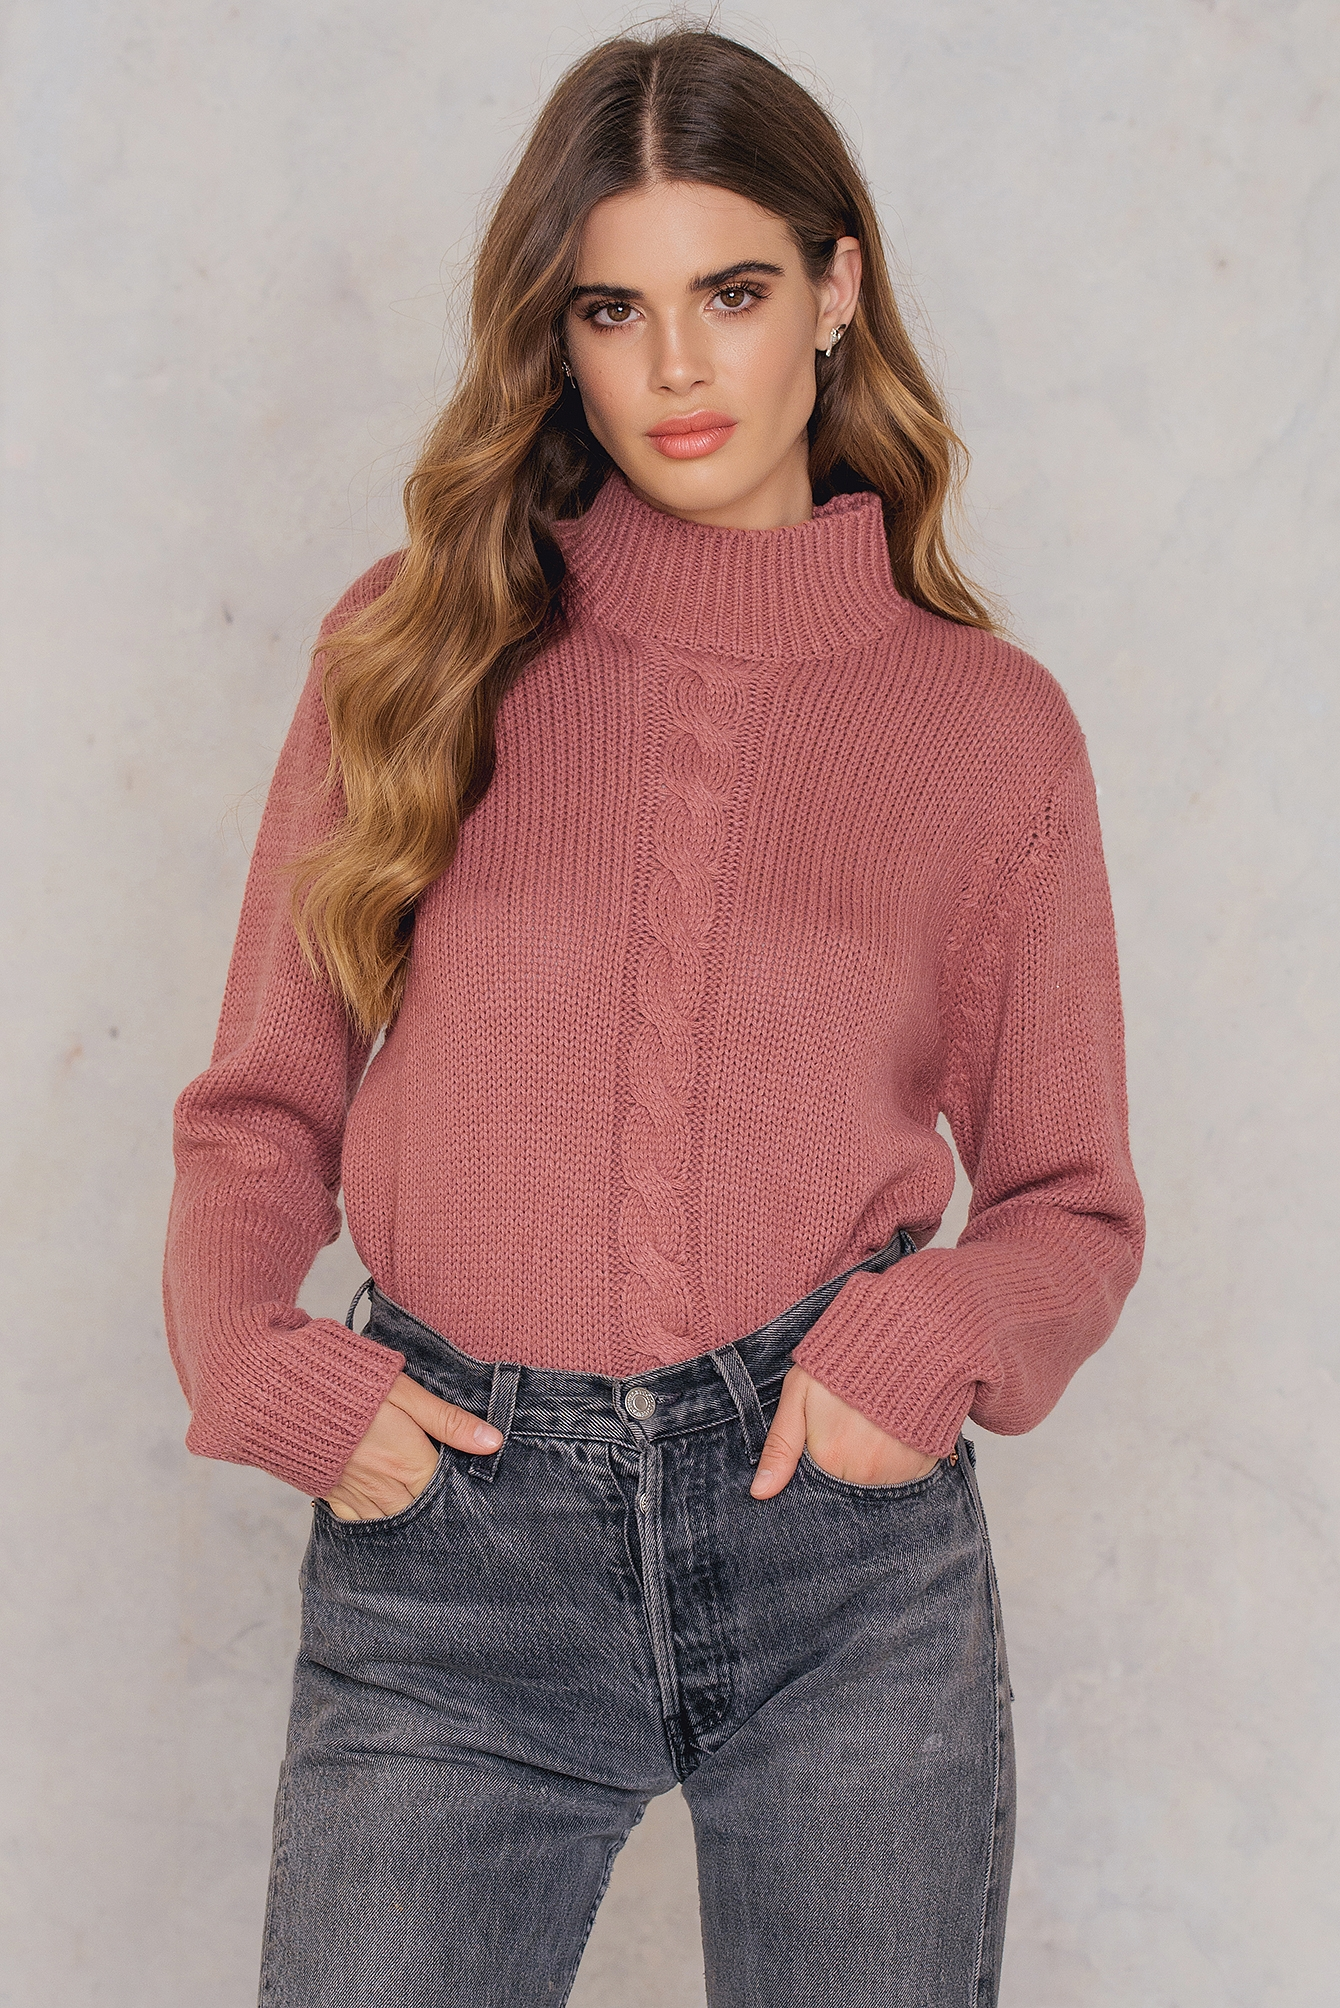 Canyon Pink Mira polo cable knit